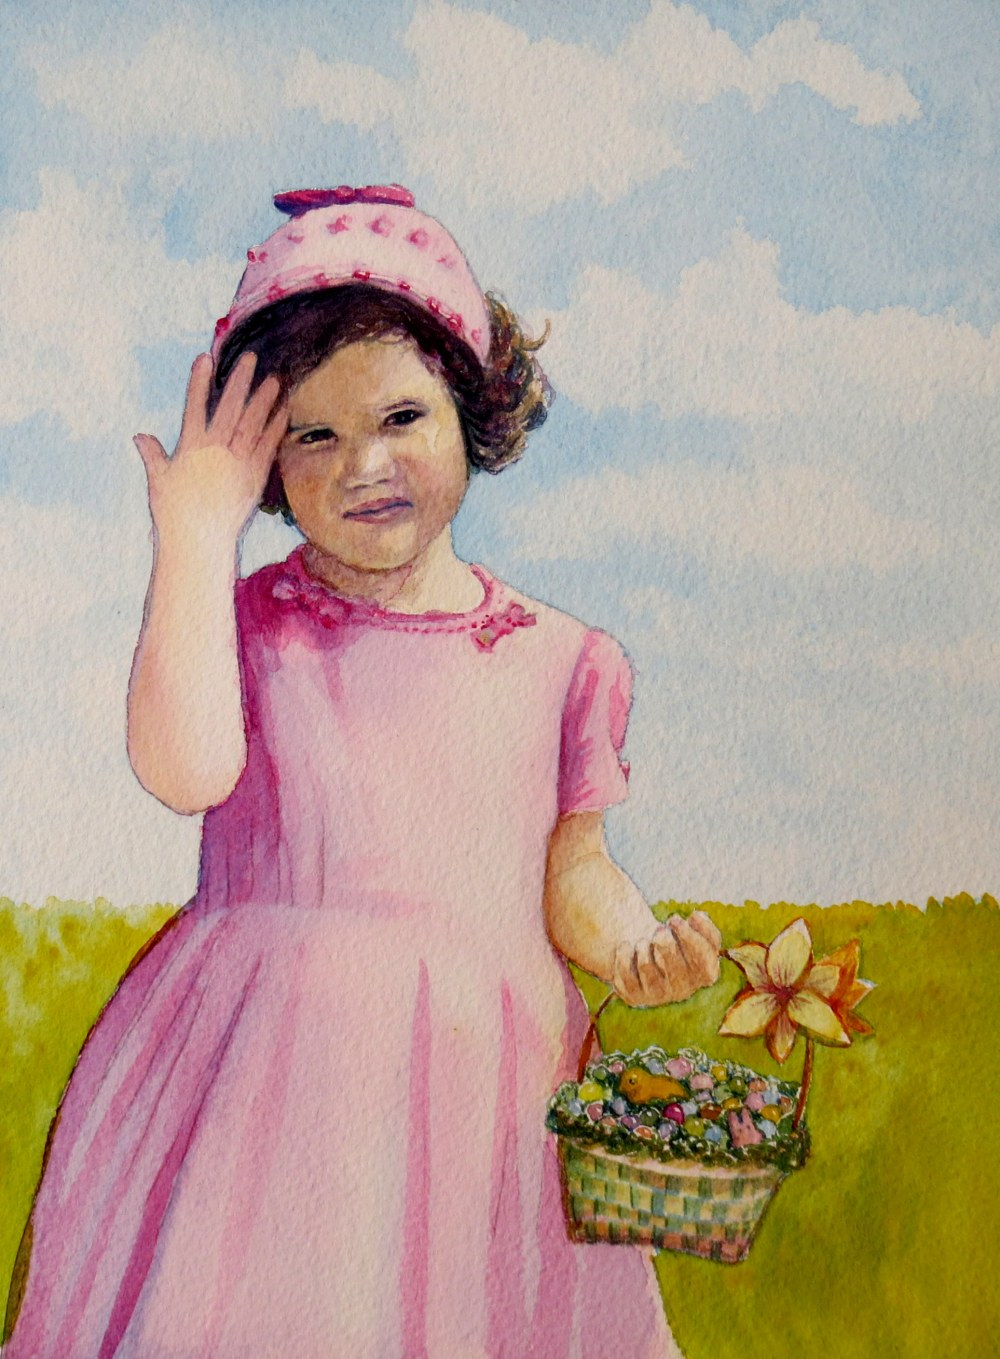 In My Easter Bonnet – Image © Susan Bartel. All Rights Reserved.